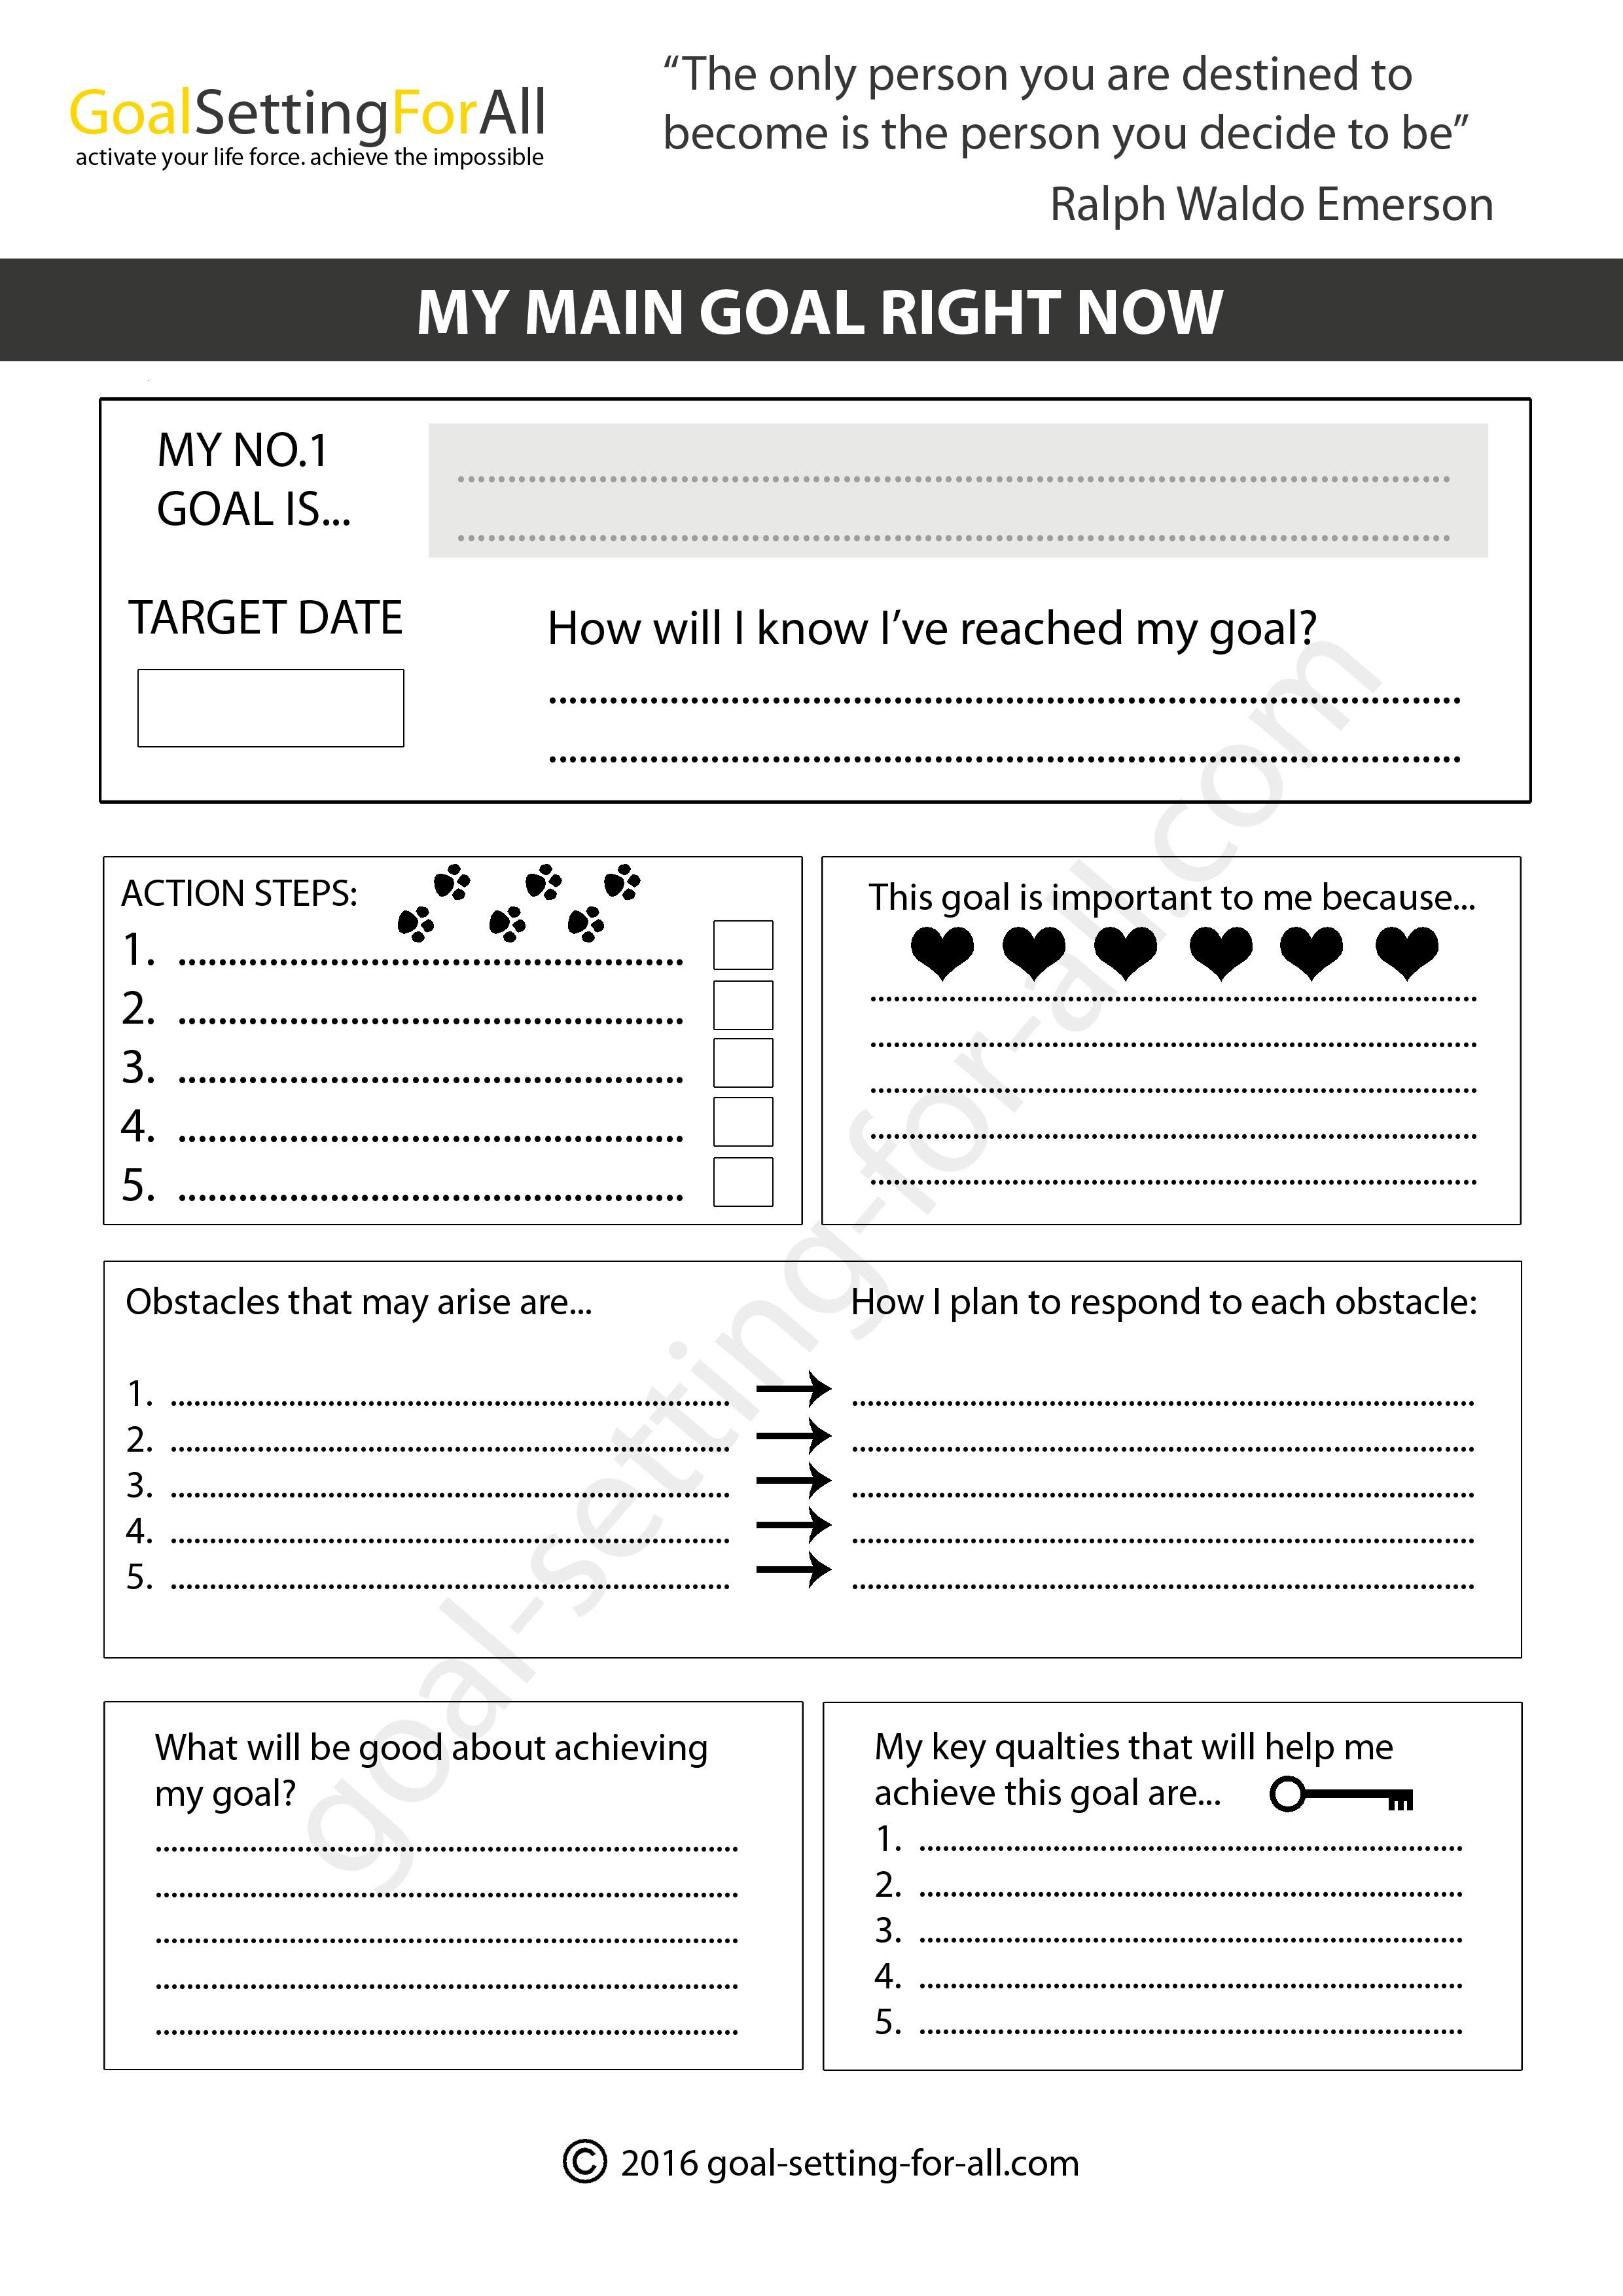 Worksheets Goal Setting Worksheet Pdf image result for life balance goal setting pdf vision board you can use these worksheets to think through your goals and future dreams